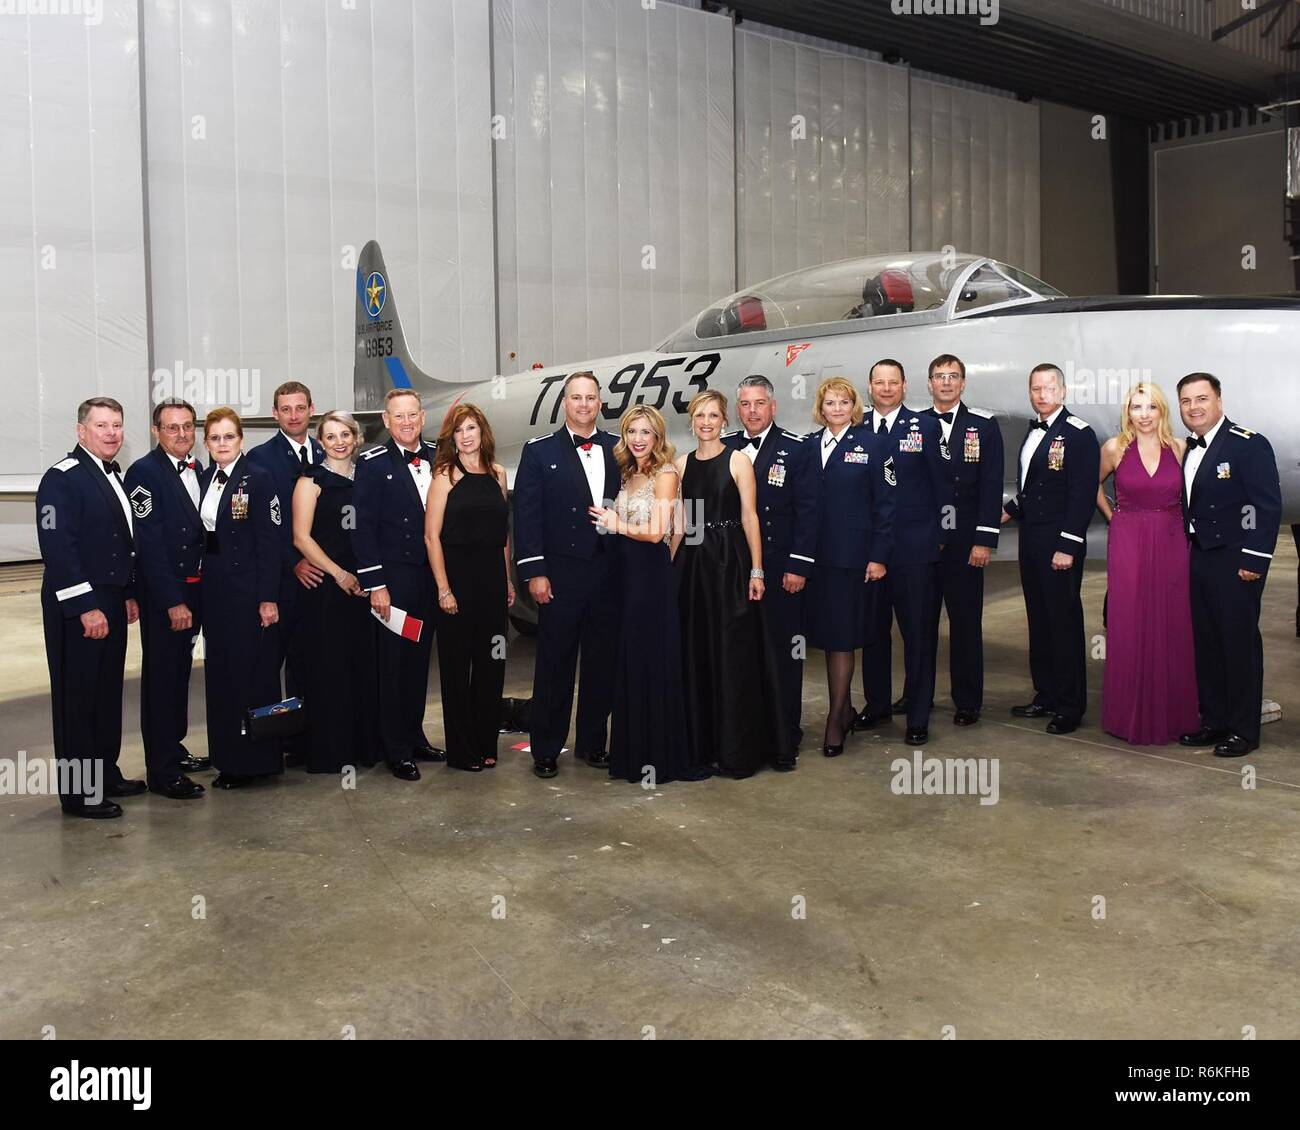 Members of the 147th Attack Wing, 149th Fighter Wing, and Texas Military Department Leadership attend a gala at the new Lone Star Flight Meseum in Houston, Texas on May 20, 2017. The Lone Star Flight Museum inducted the 147th Attack Squadron into the Texas Aviation Hall of Fame; established in 1997 to honor famous aviators who are Texans and famous Texans who are aviators. - Stock Image